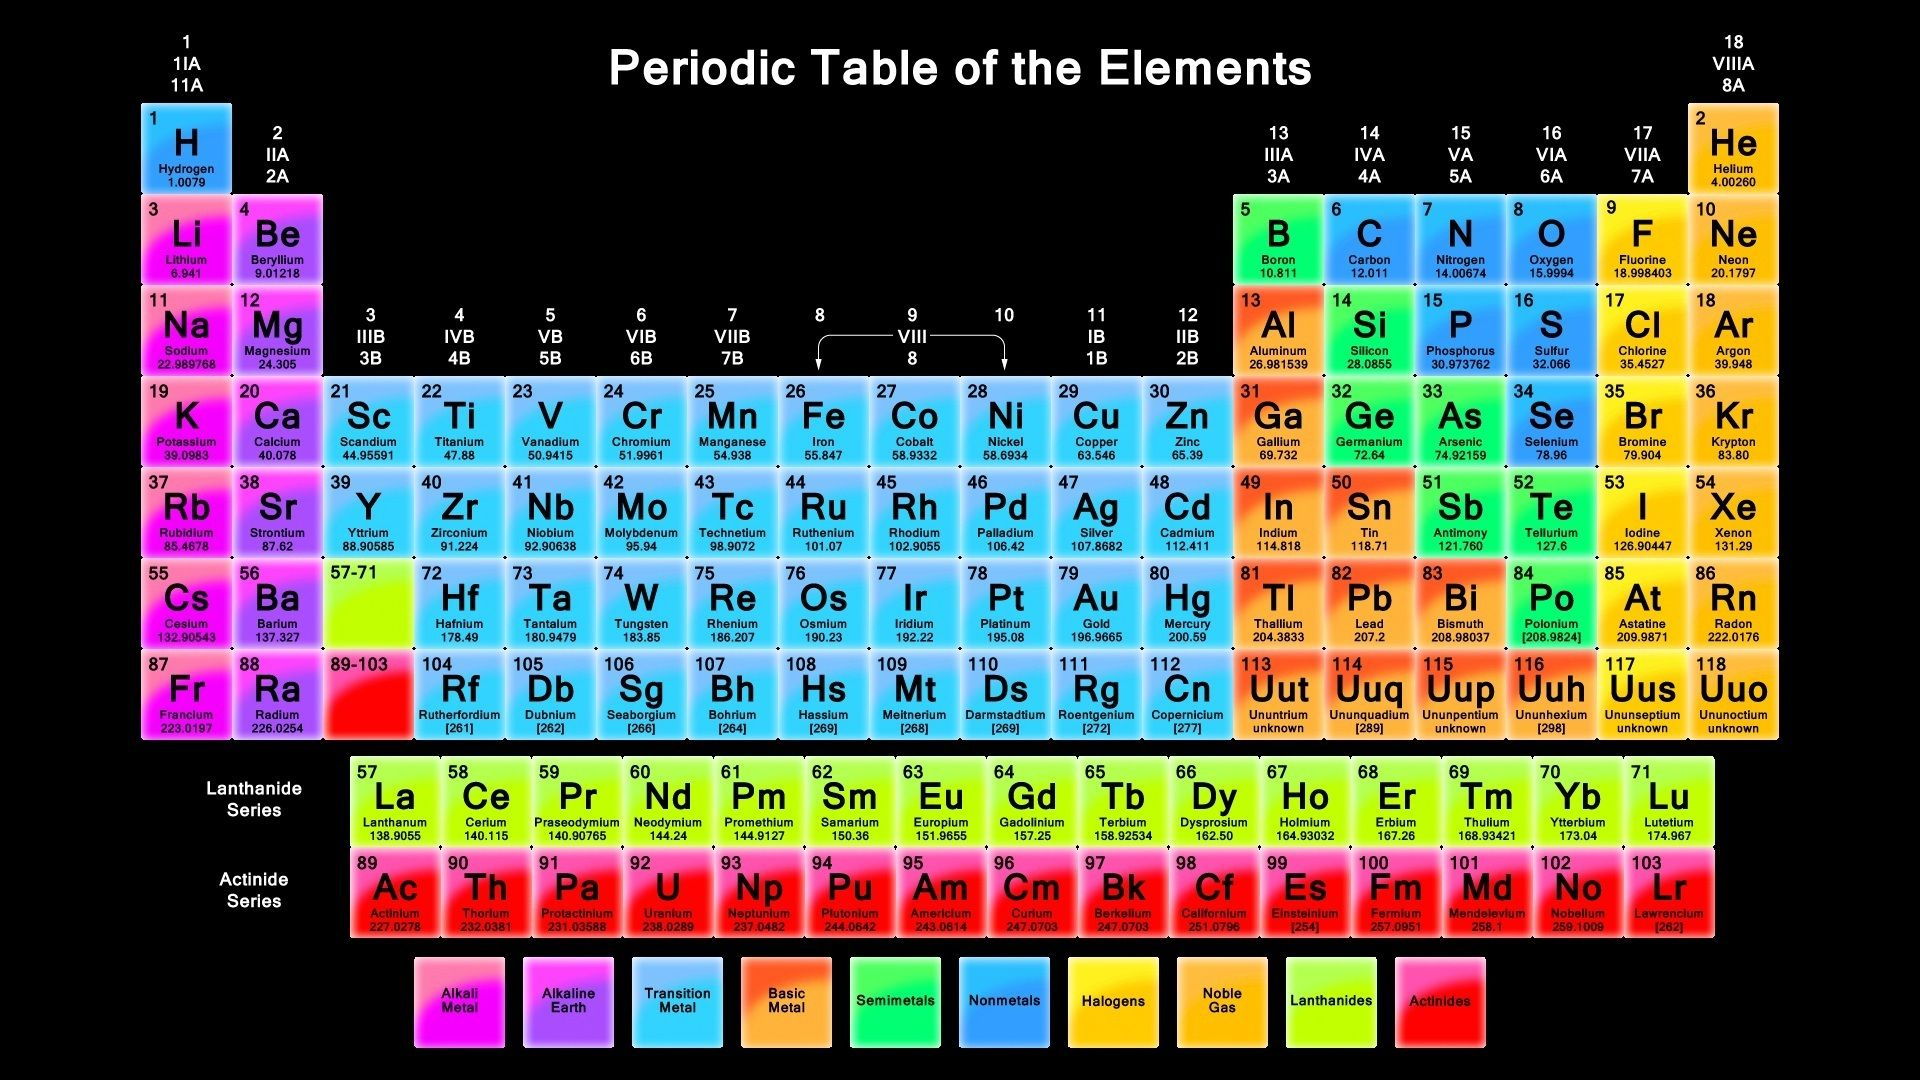 Periodic table 3d cg pinterest periodic table urtaz Gallery